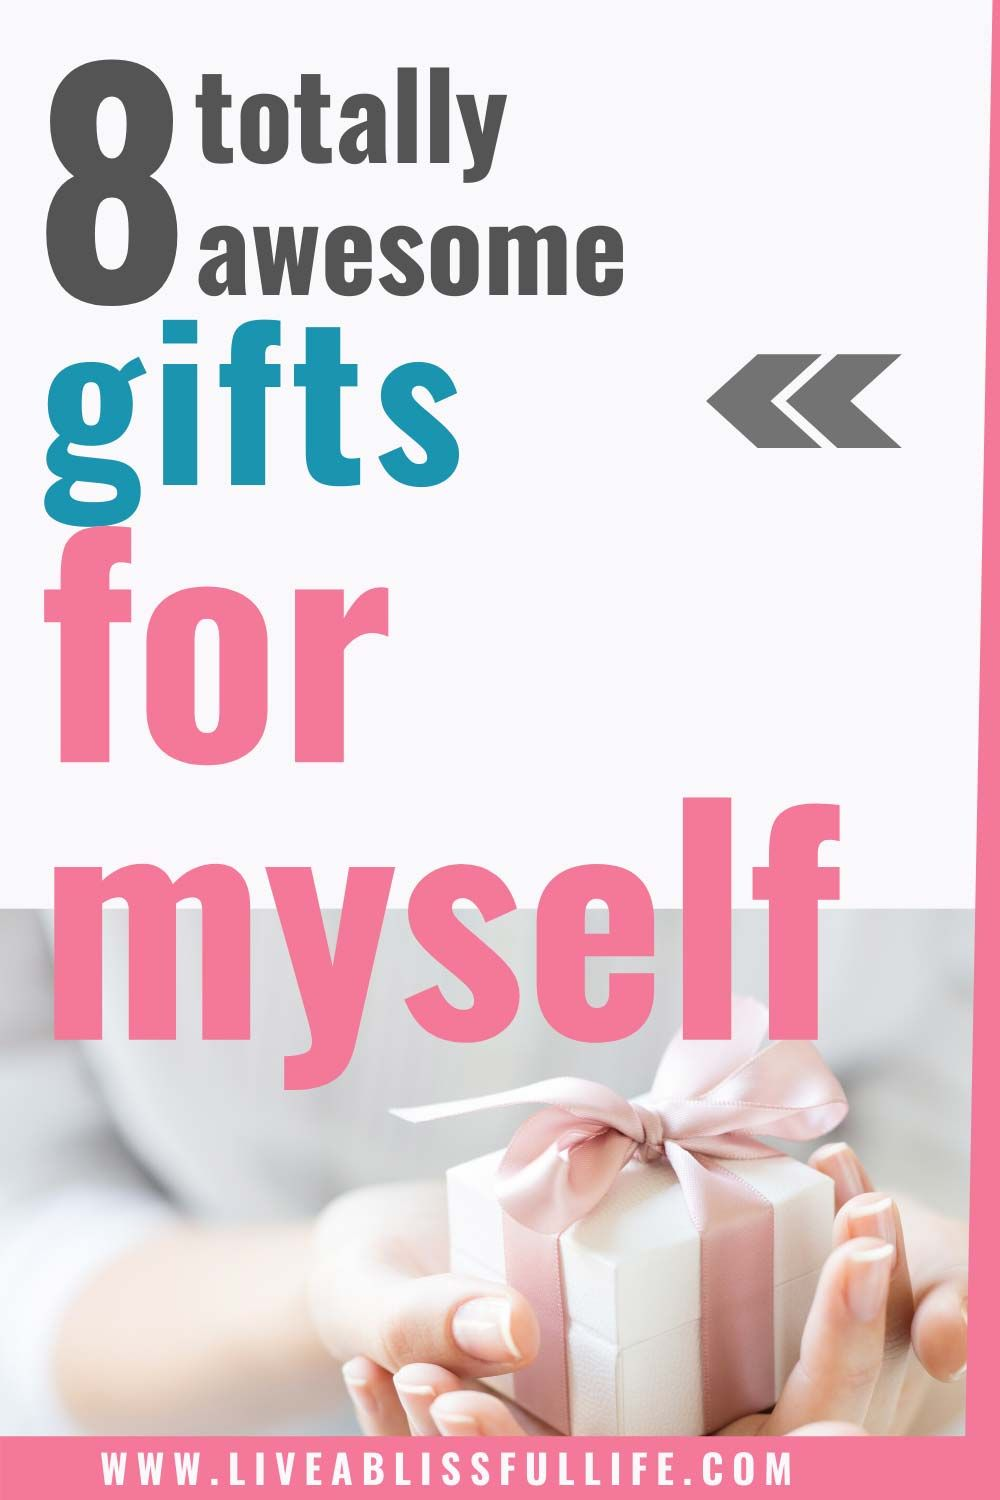 8 Awesome Gifts To Buy Yourself What Should I Get Myself